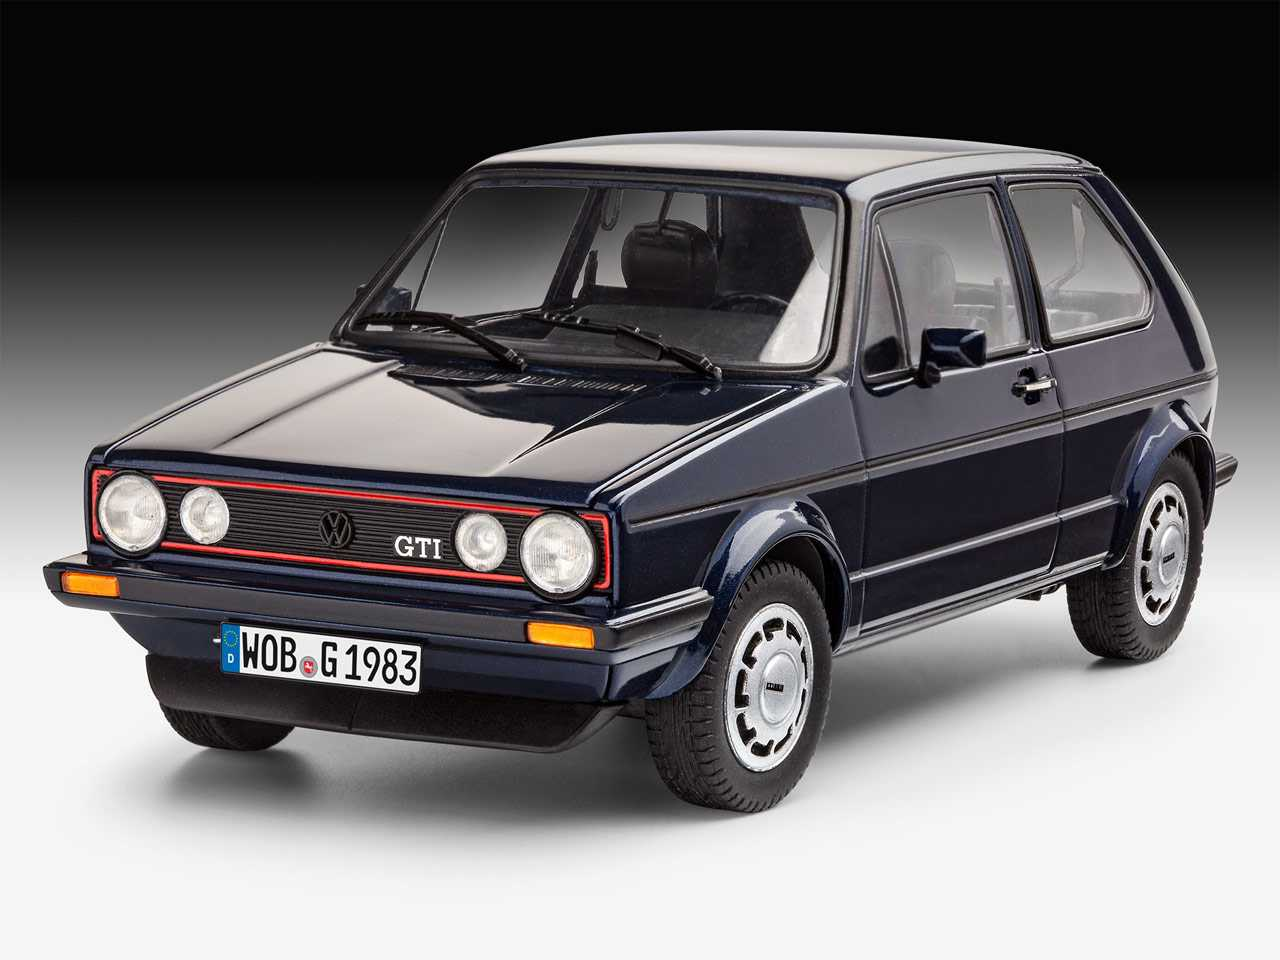 1 24 vw golf i gti pirelli 35 years. Black Bedroom Furniture Sets. Home Design Ideas